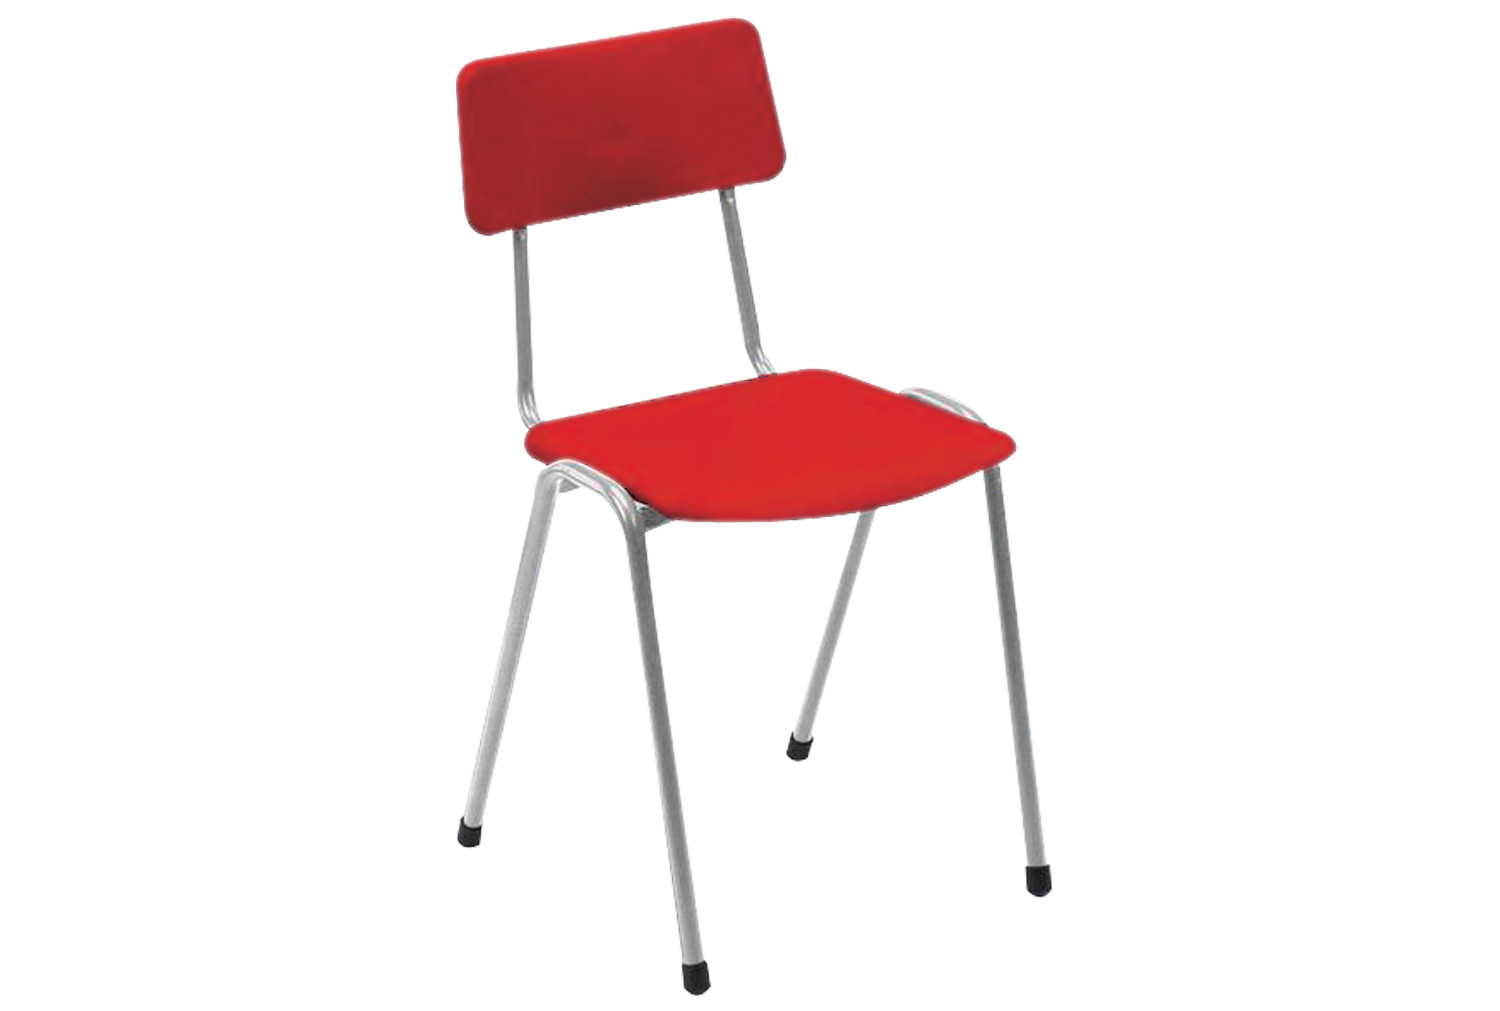 Hille MX classroom chair